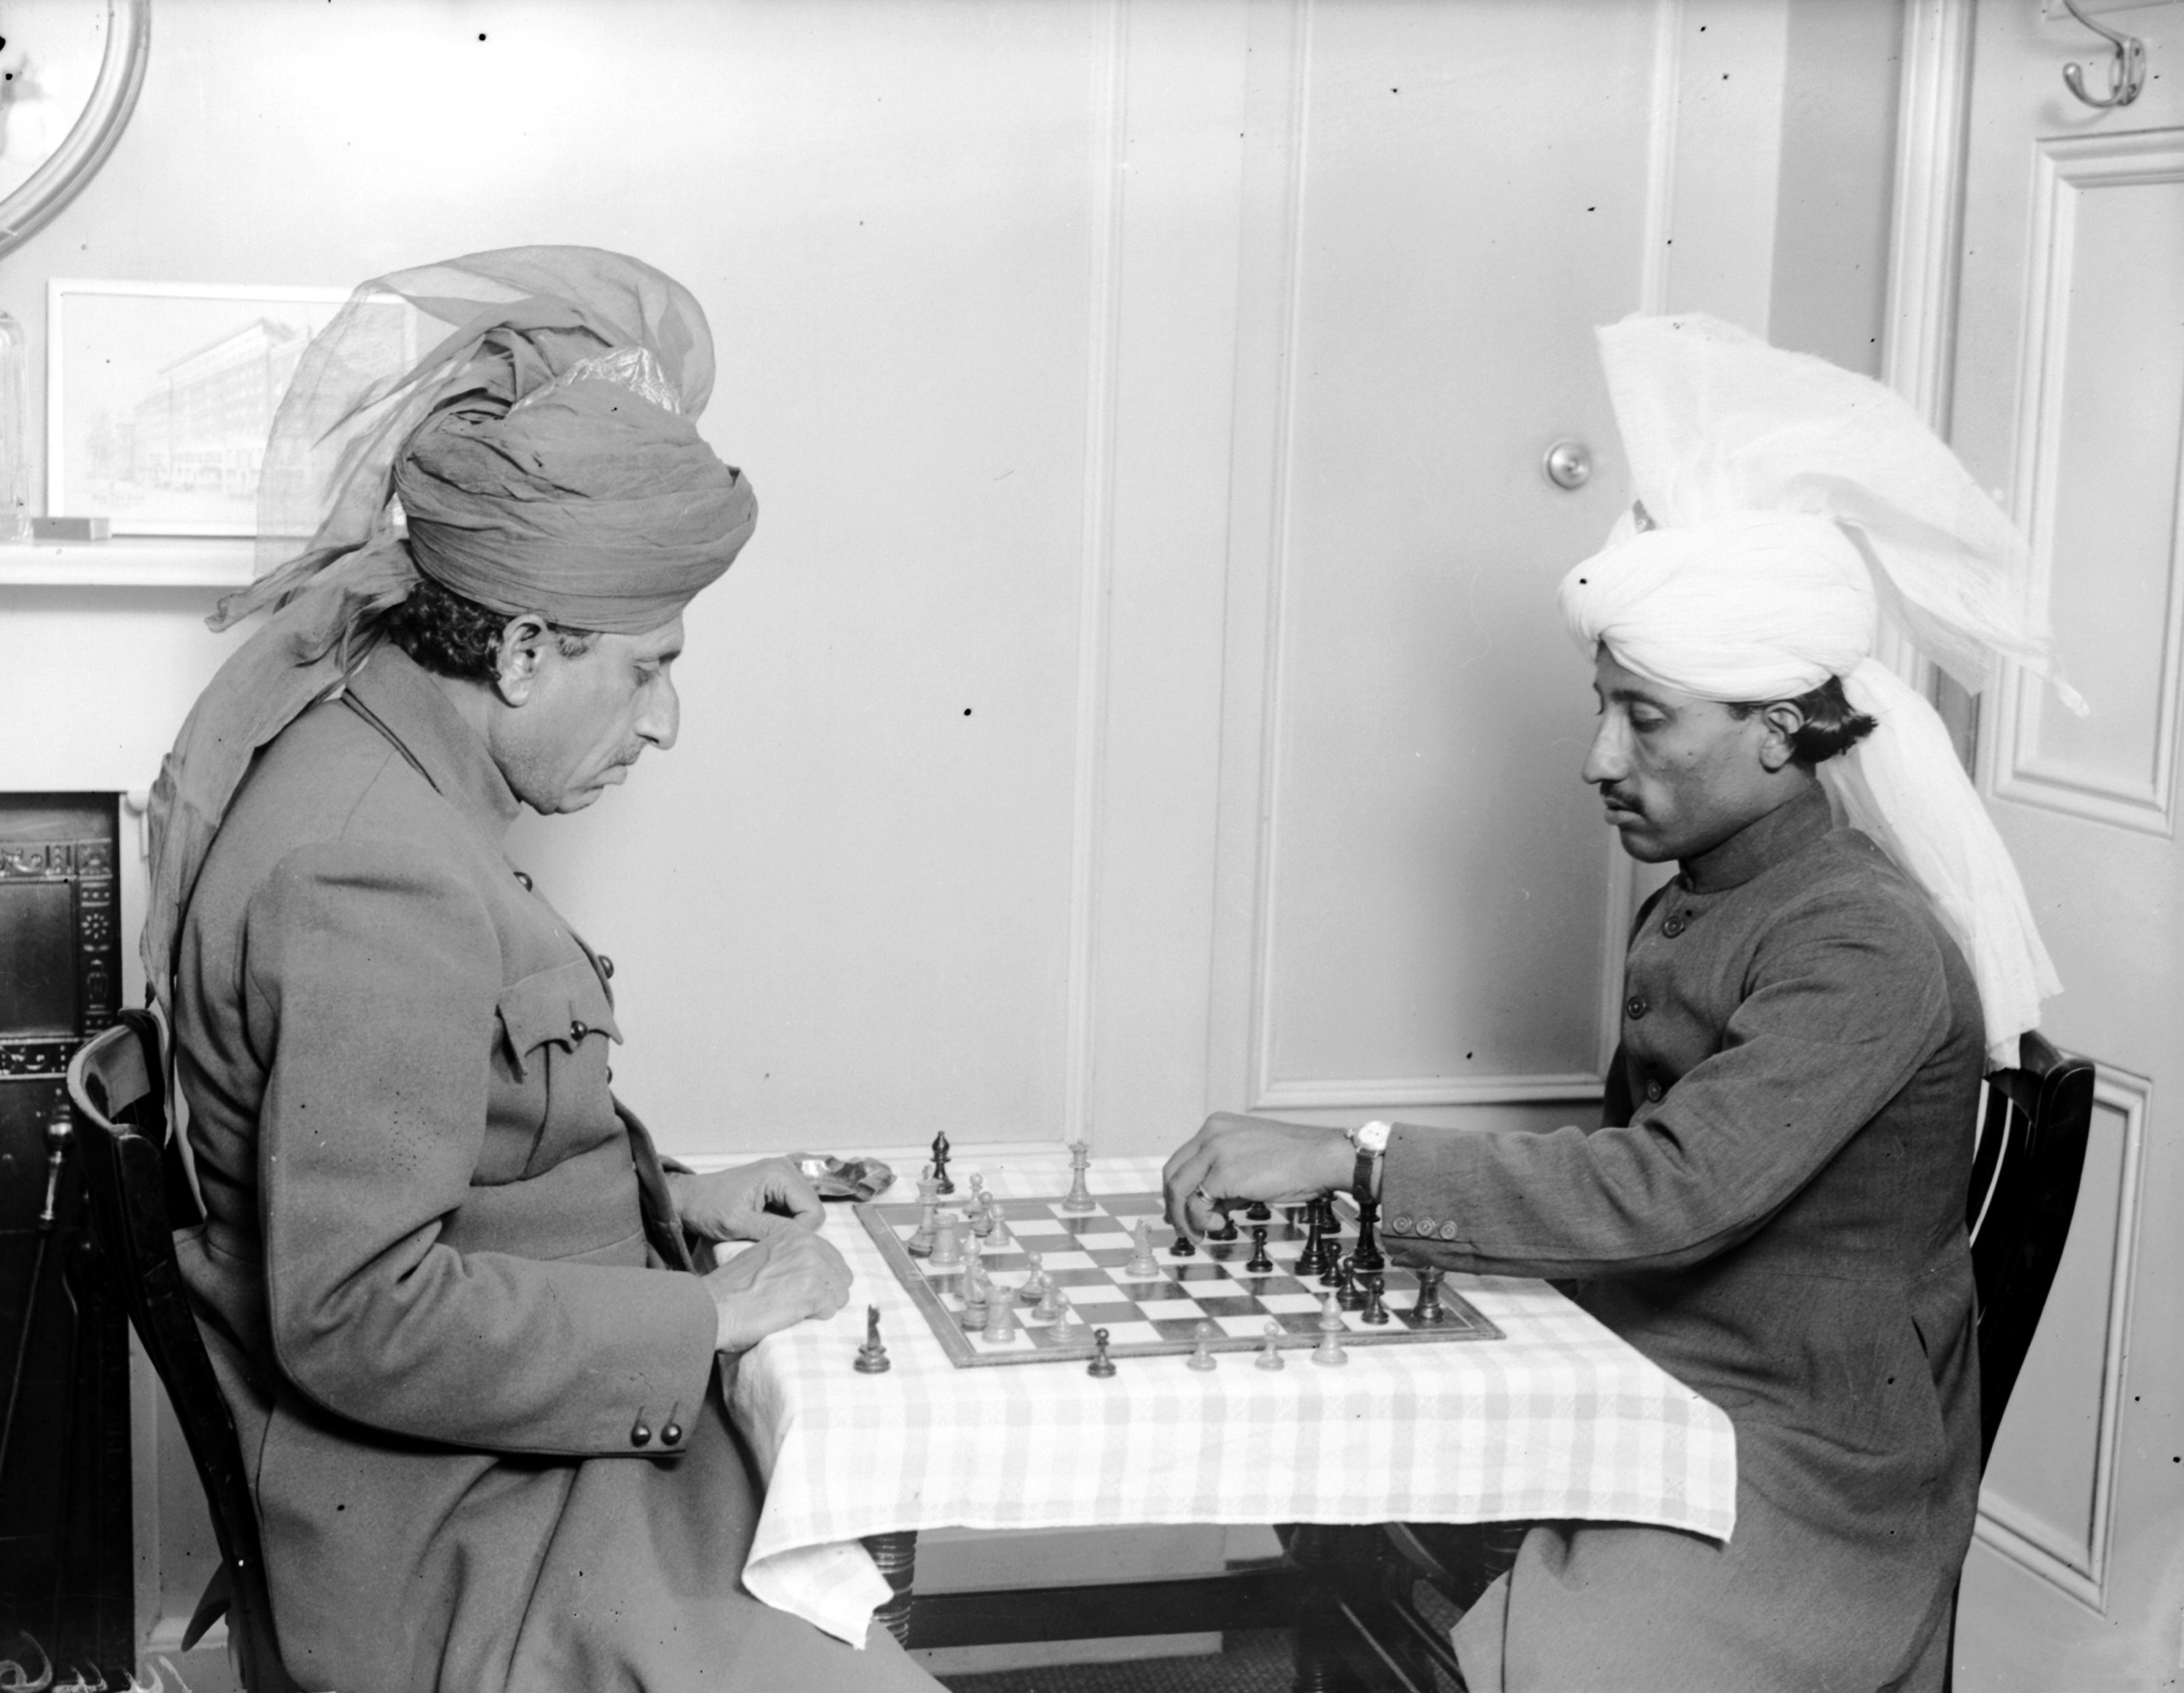 Two men in uniforms and turbans playing chess indoors